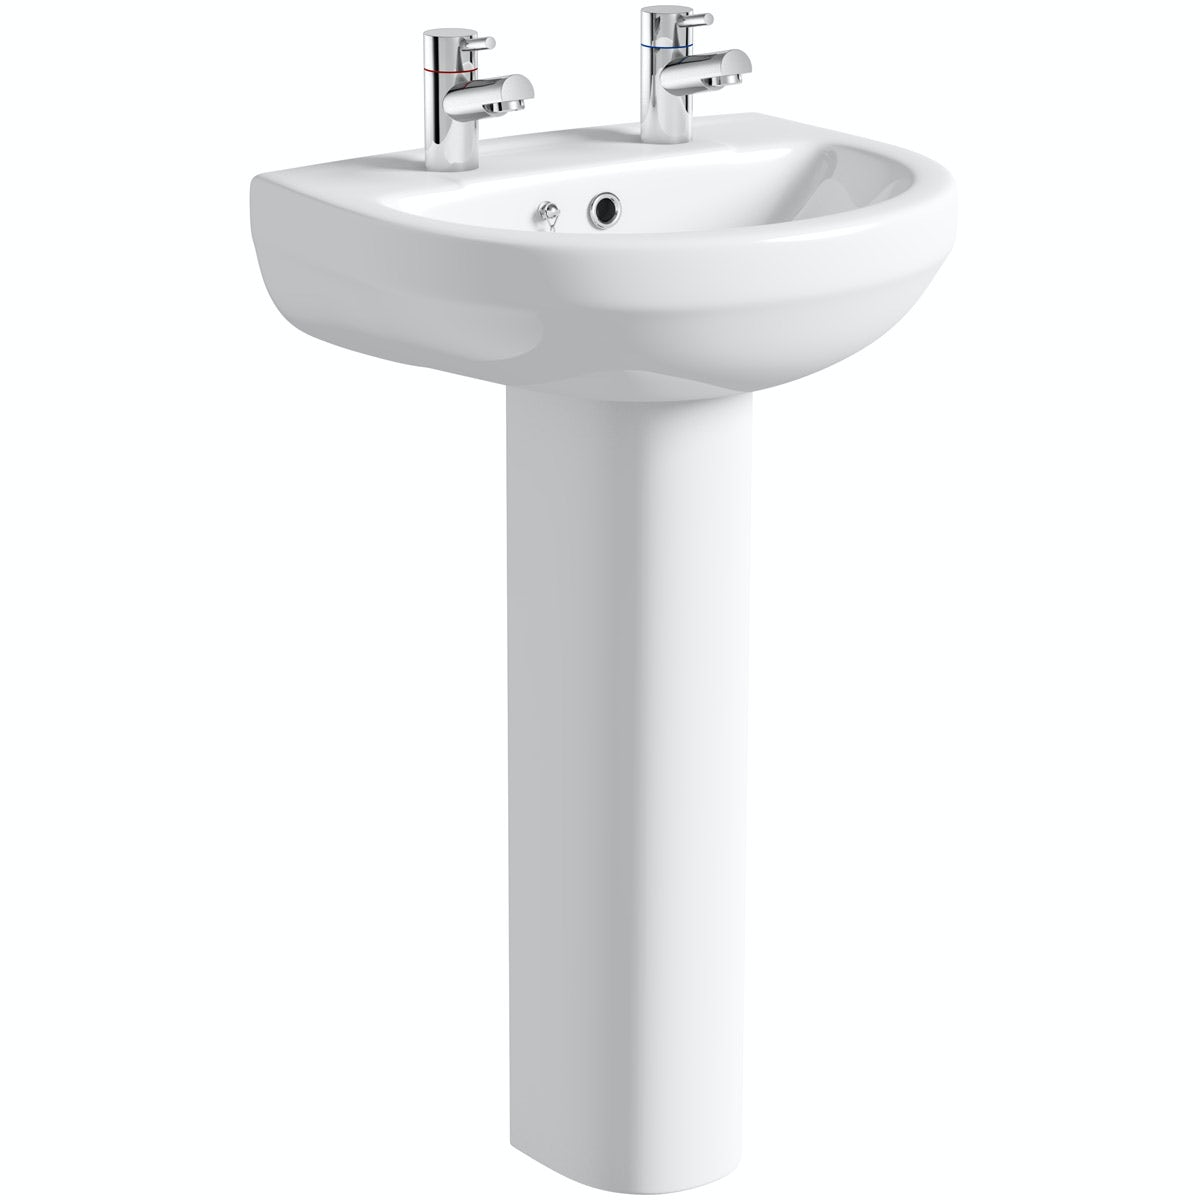 Orchard Wharfe 2 tap hole full pedestal basin with waste 550mm